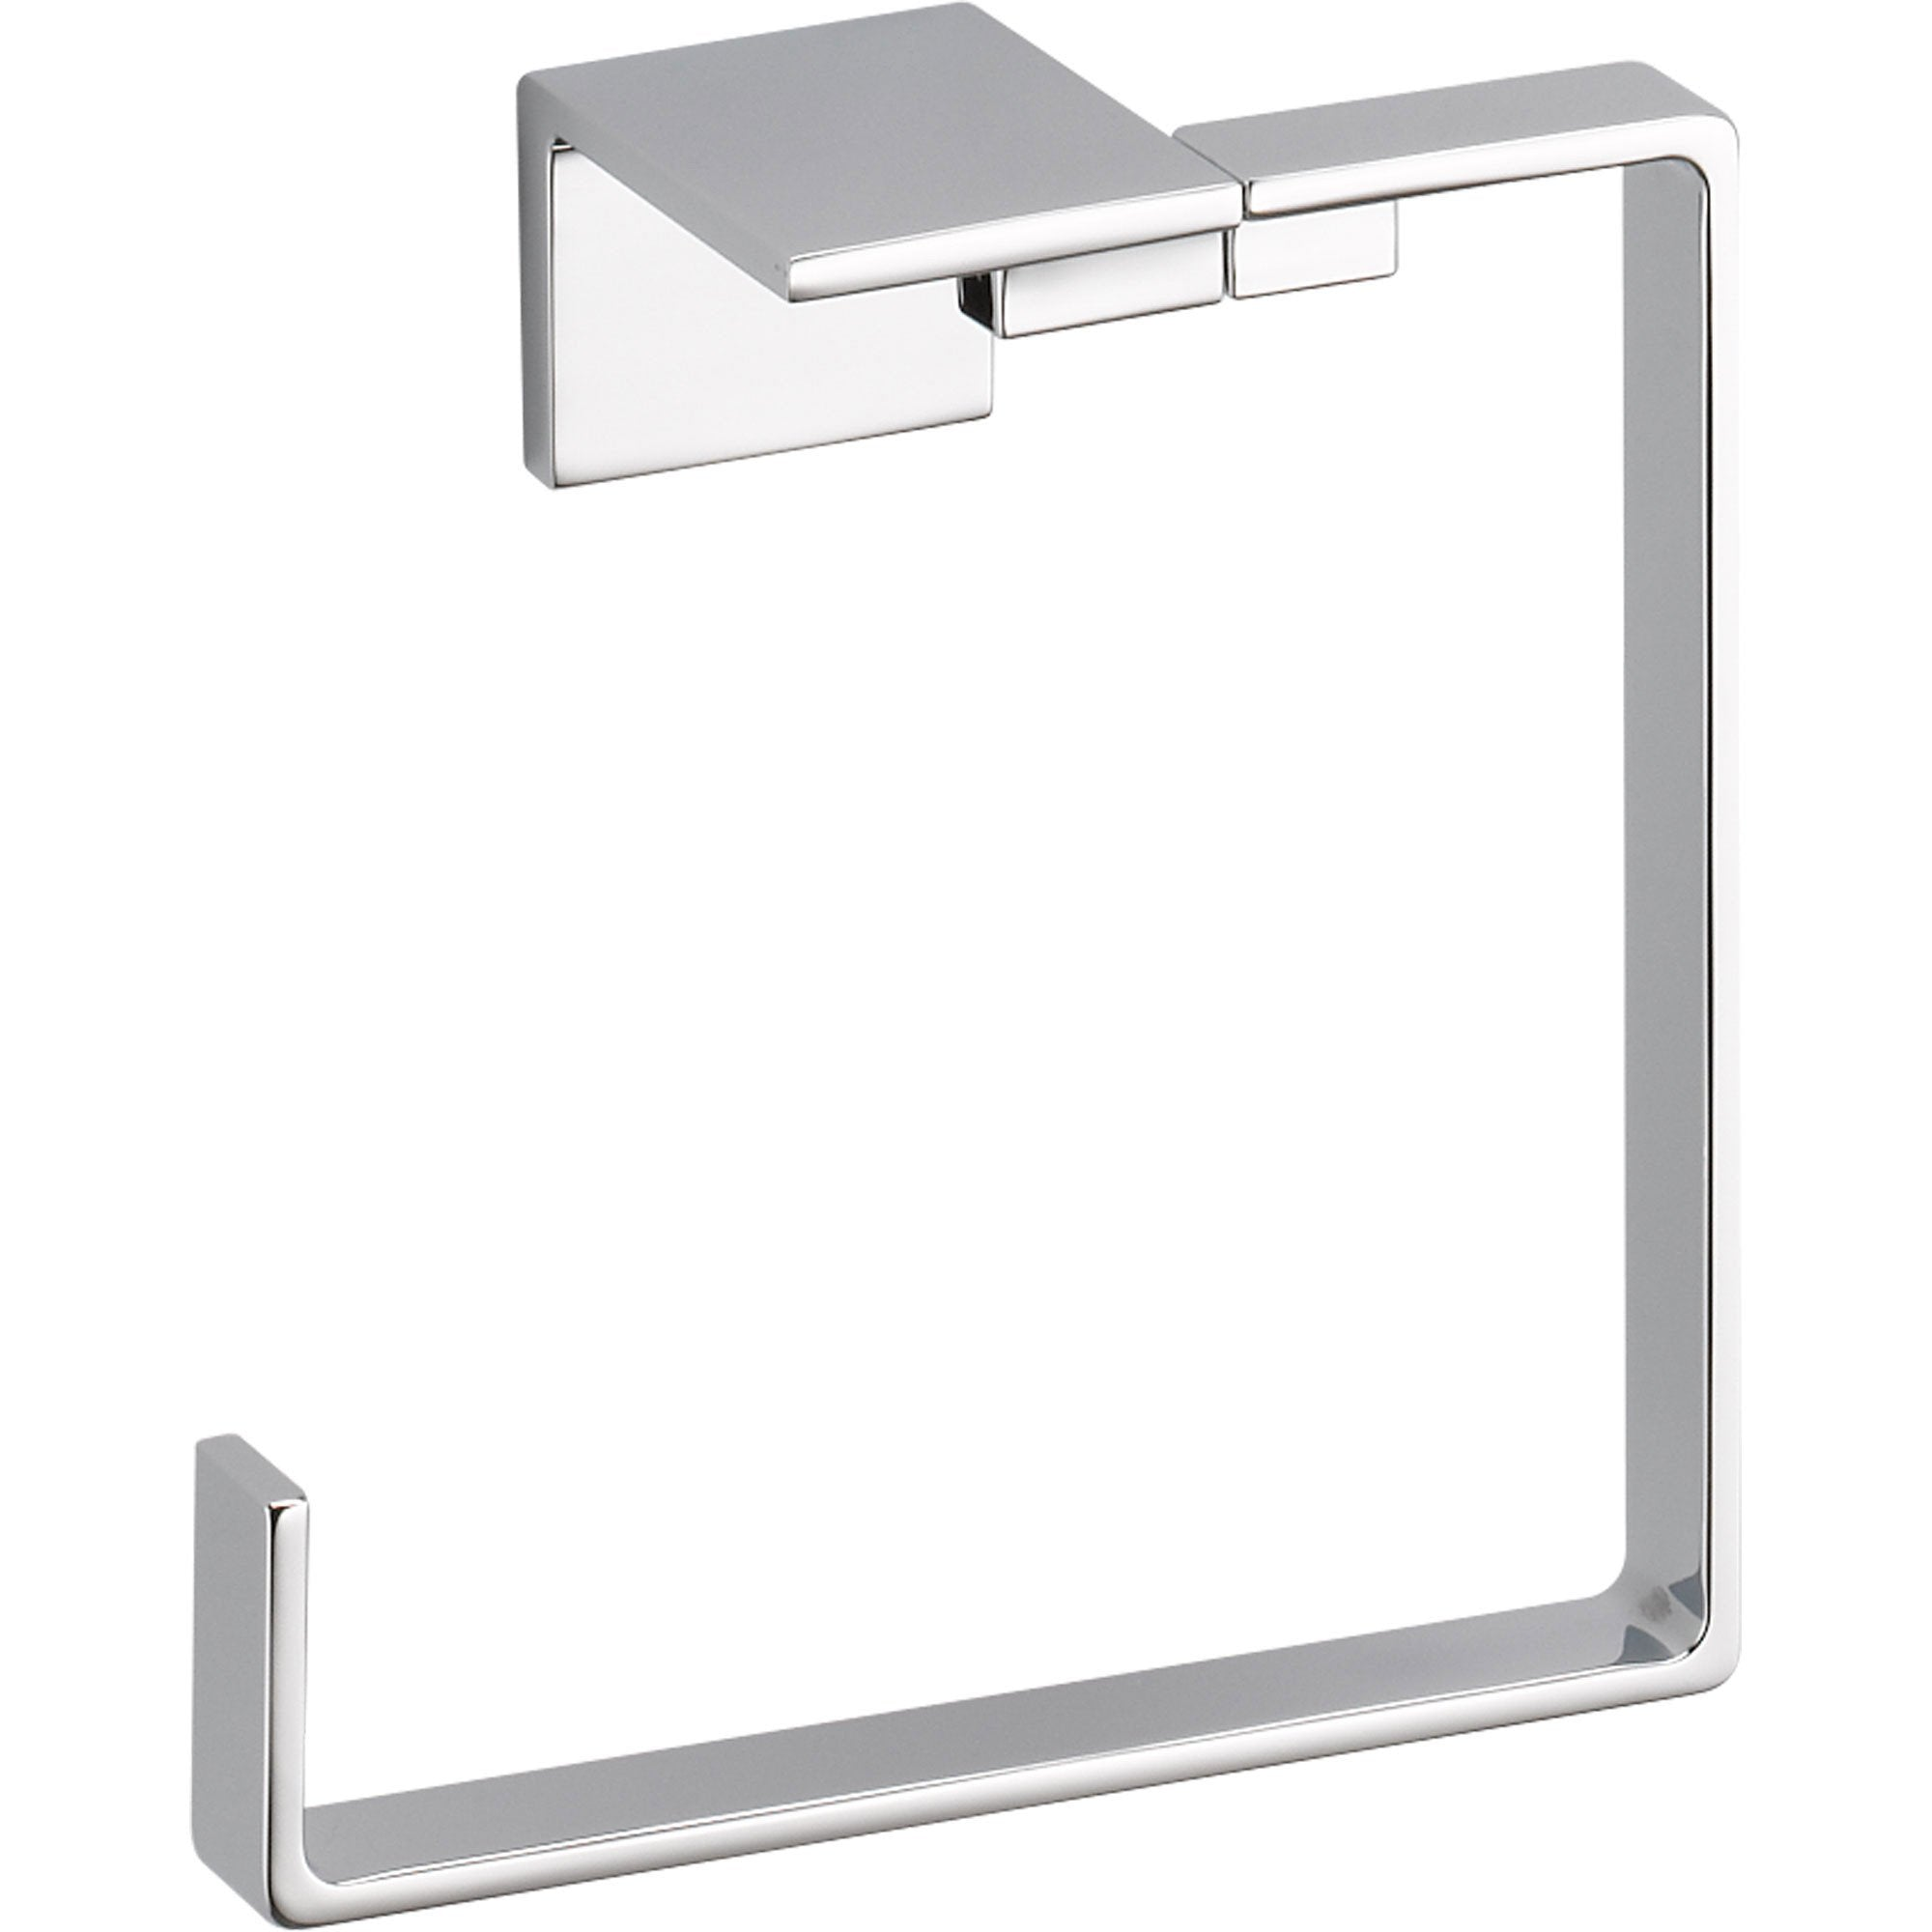 Delta Vero Modern Bathroom Accessory Hand Towel Ring in Chrome 521896